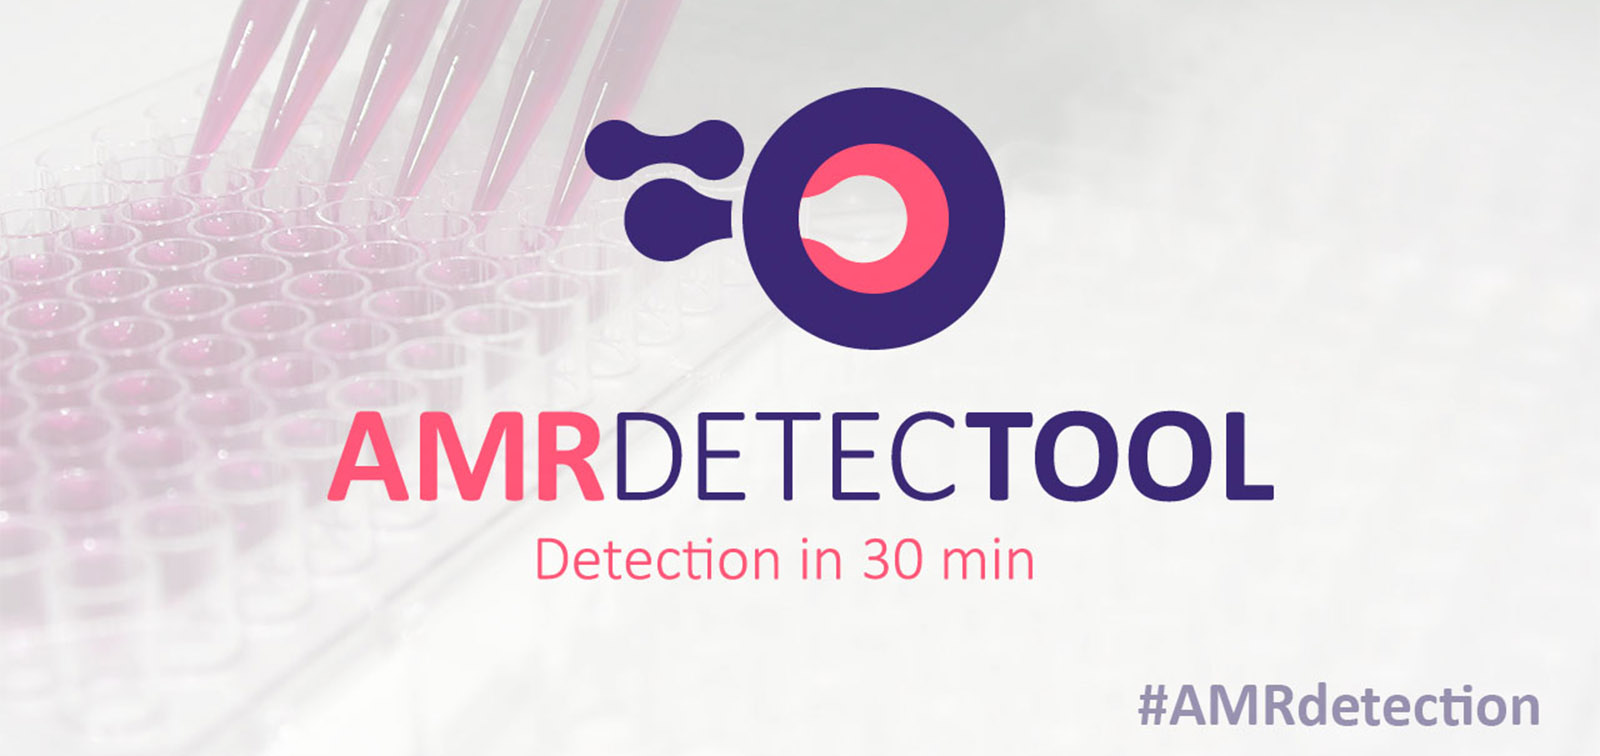 AMR DetecTool, a project funded by EIT Health